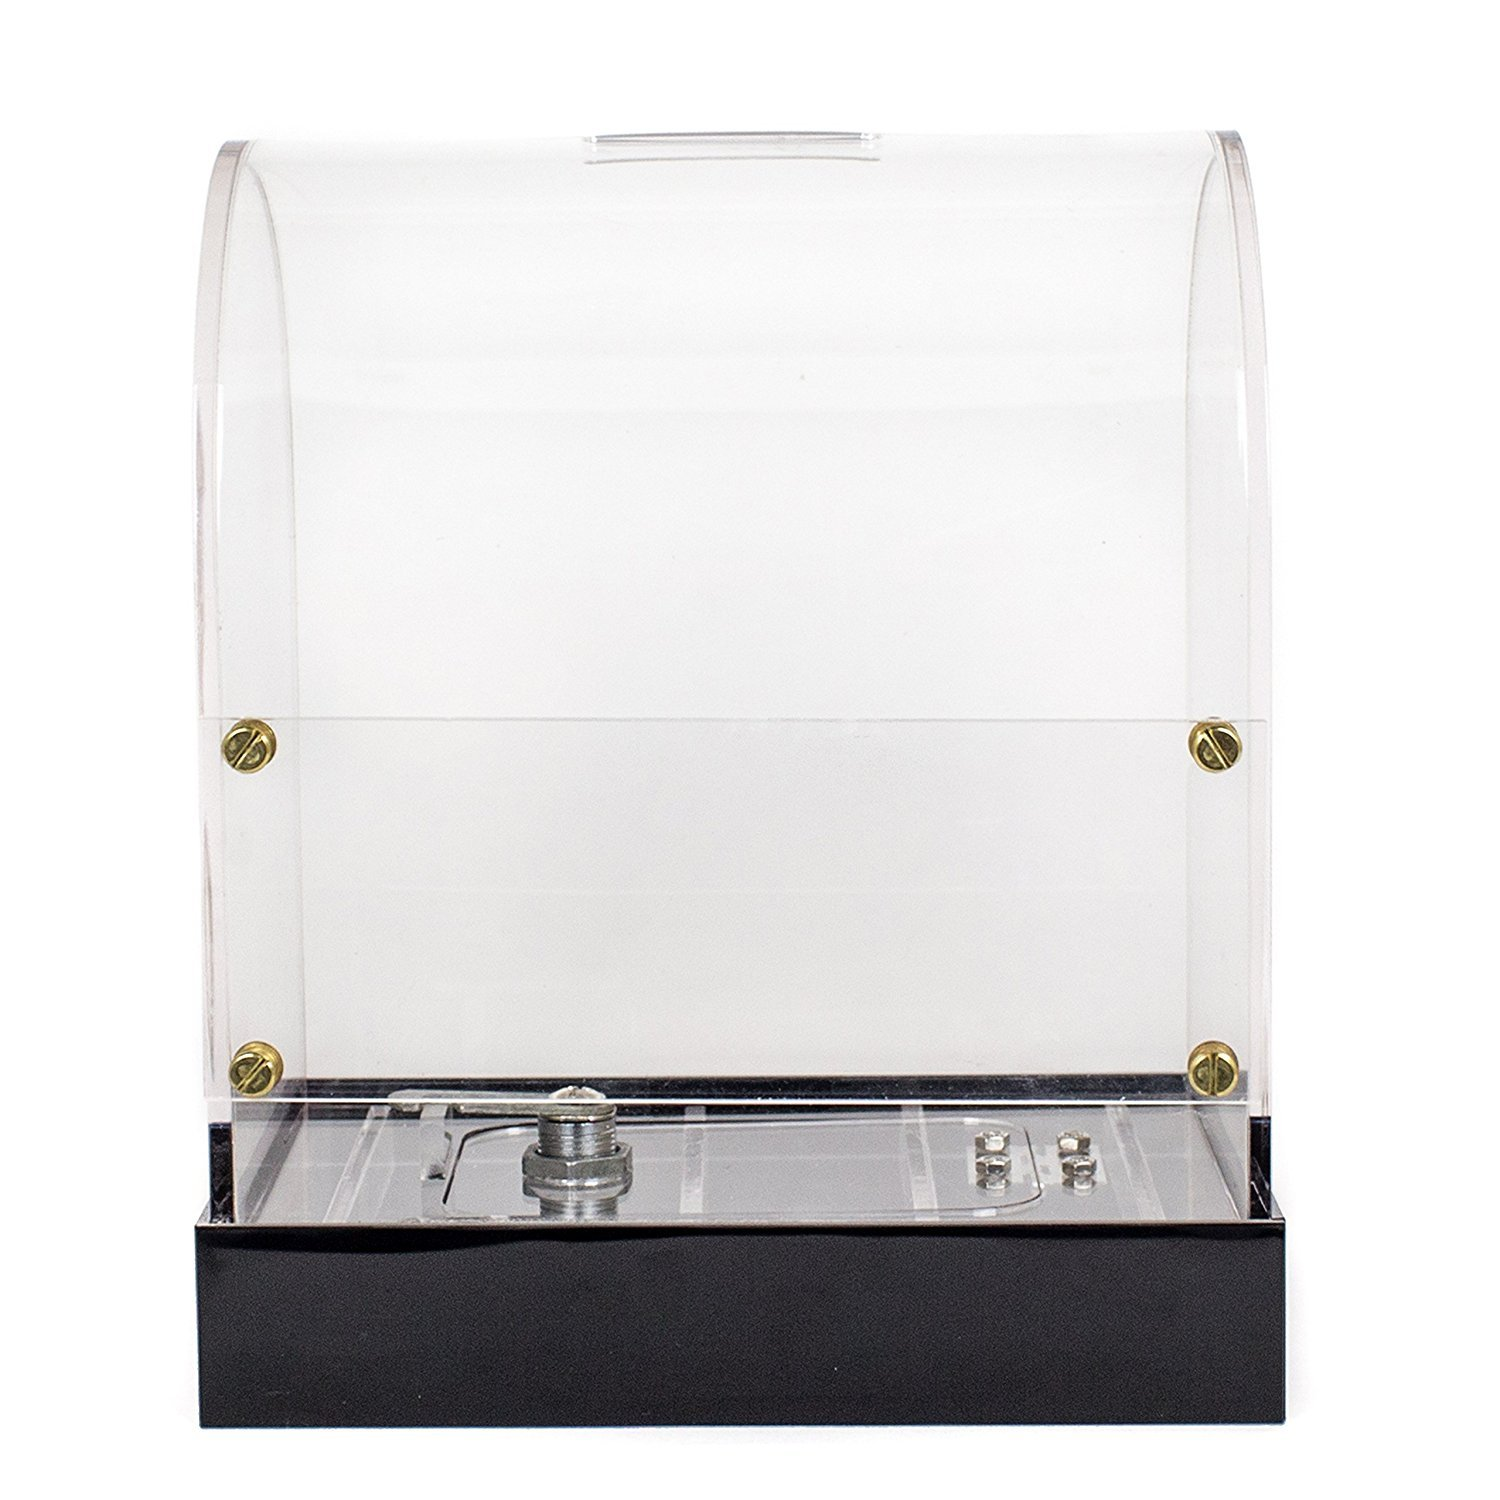 Donation Box / Ballot Box with Signer Holder and Security Chain - Pack of 3